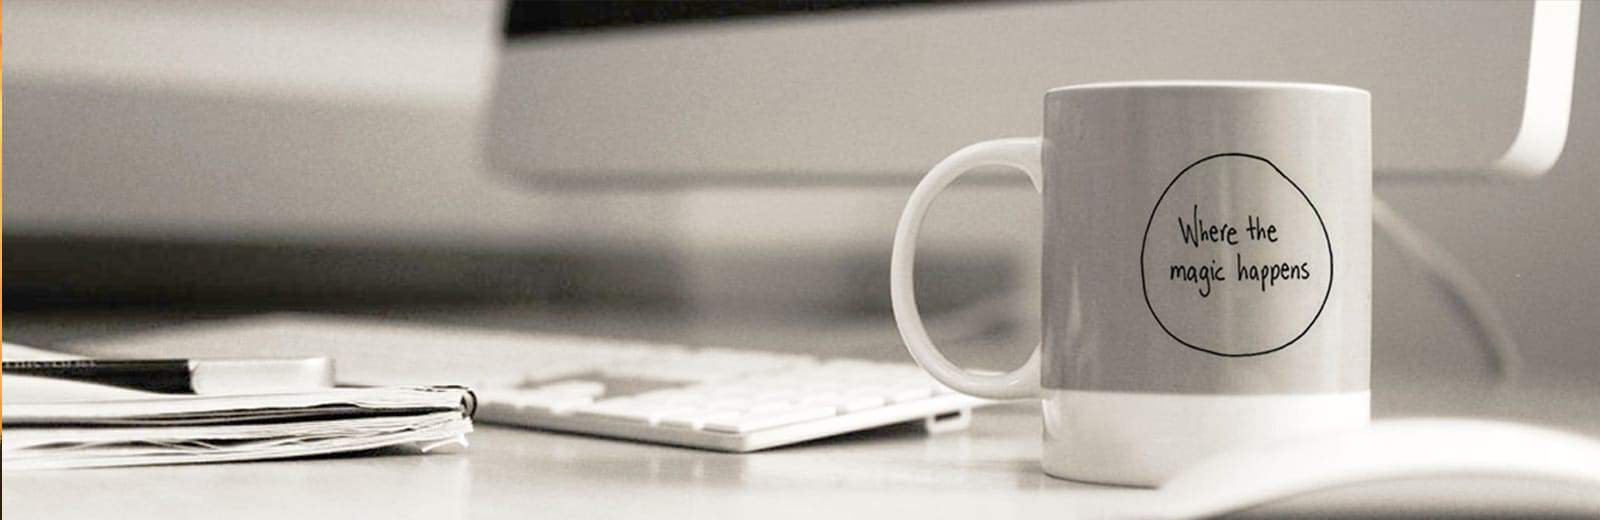 A photo of a desk with a iMac and a mug with the text: